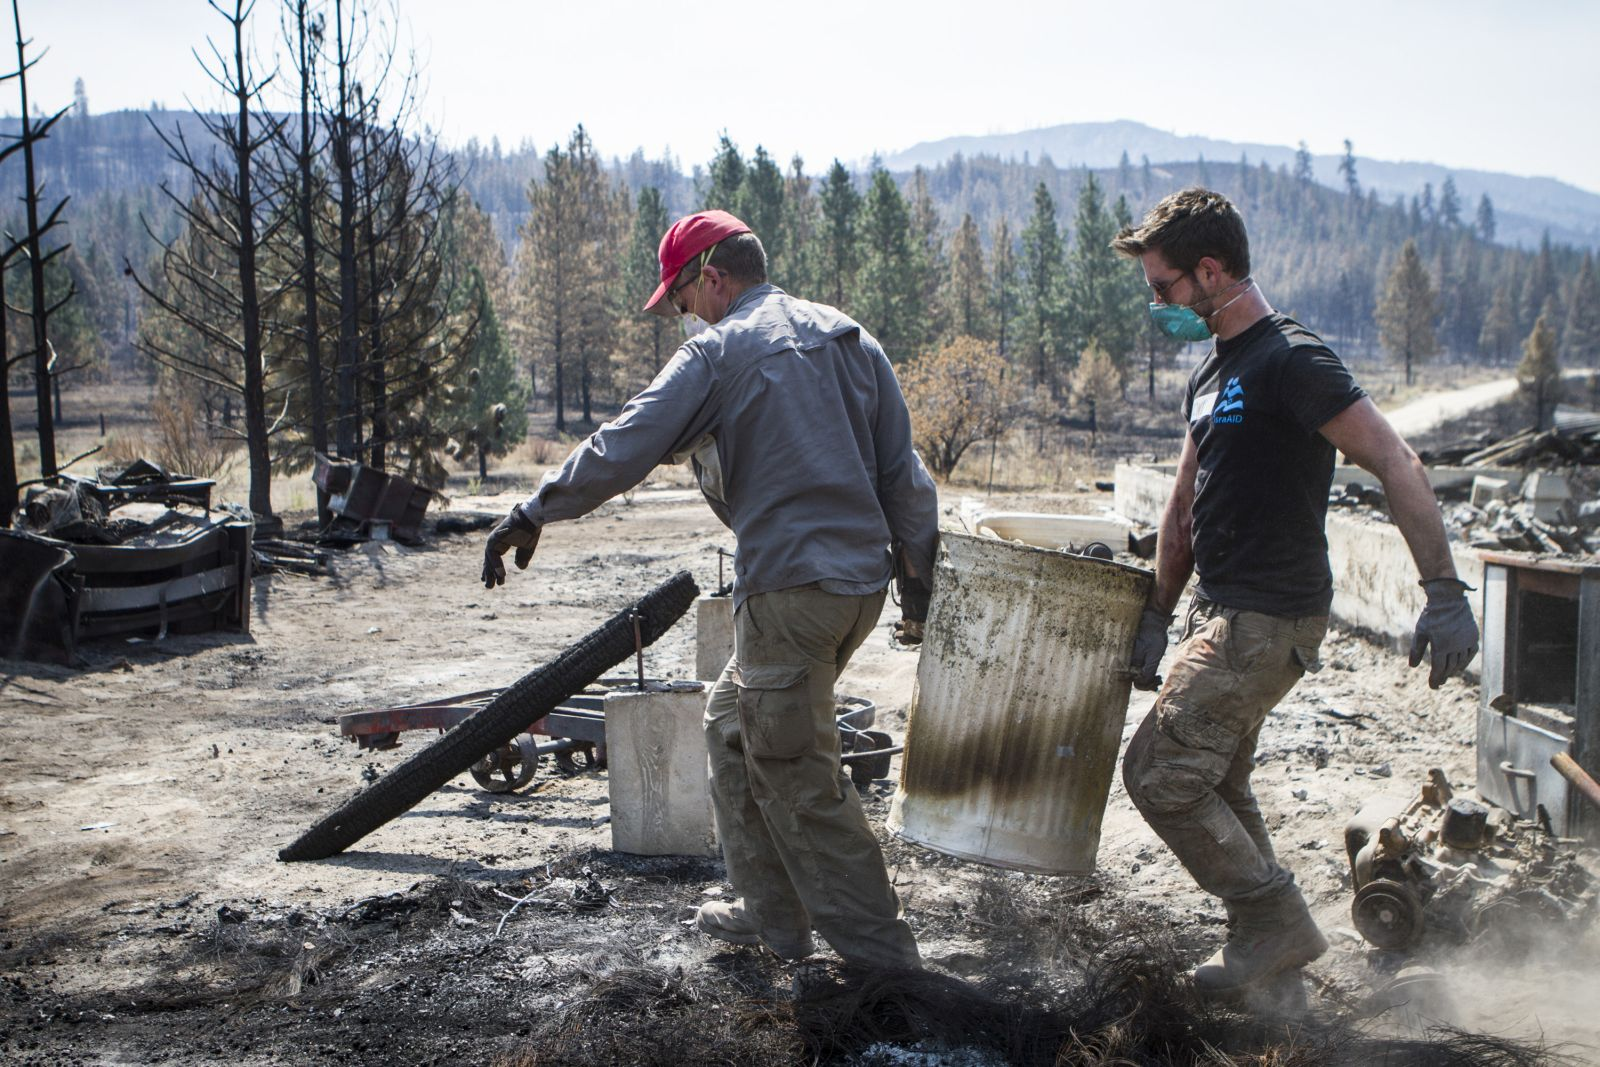 IsraAid workers clearing up after the wildfire in Washington State. Photo by Mickey Noam-Alon, IsraAid